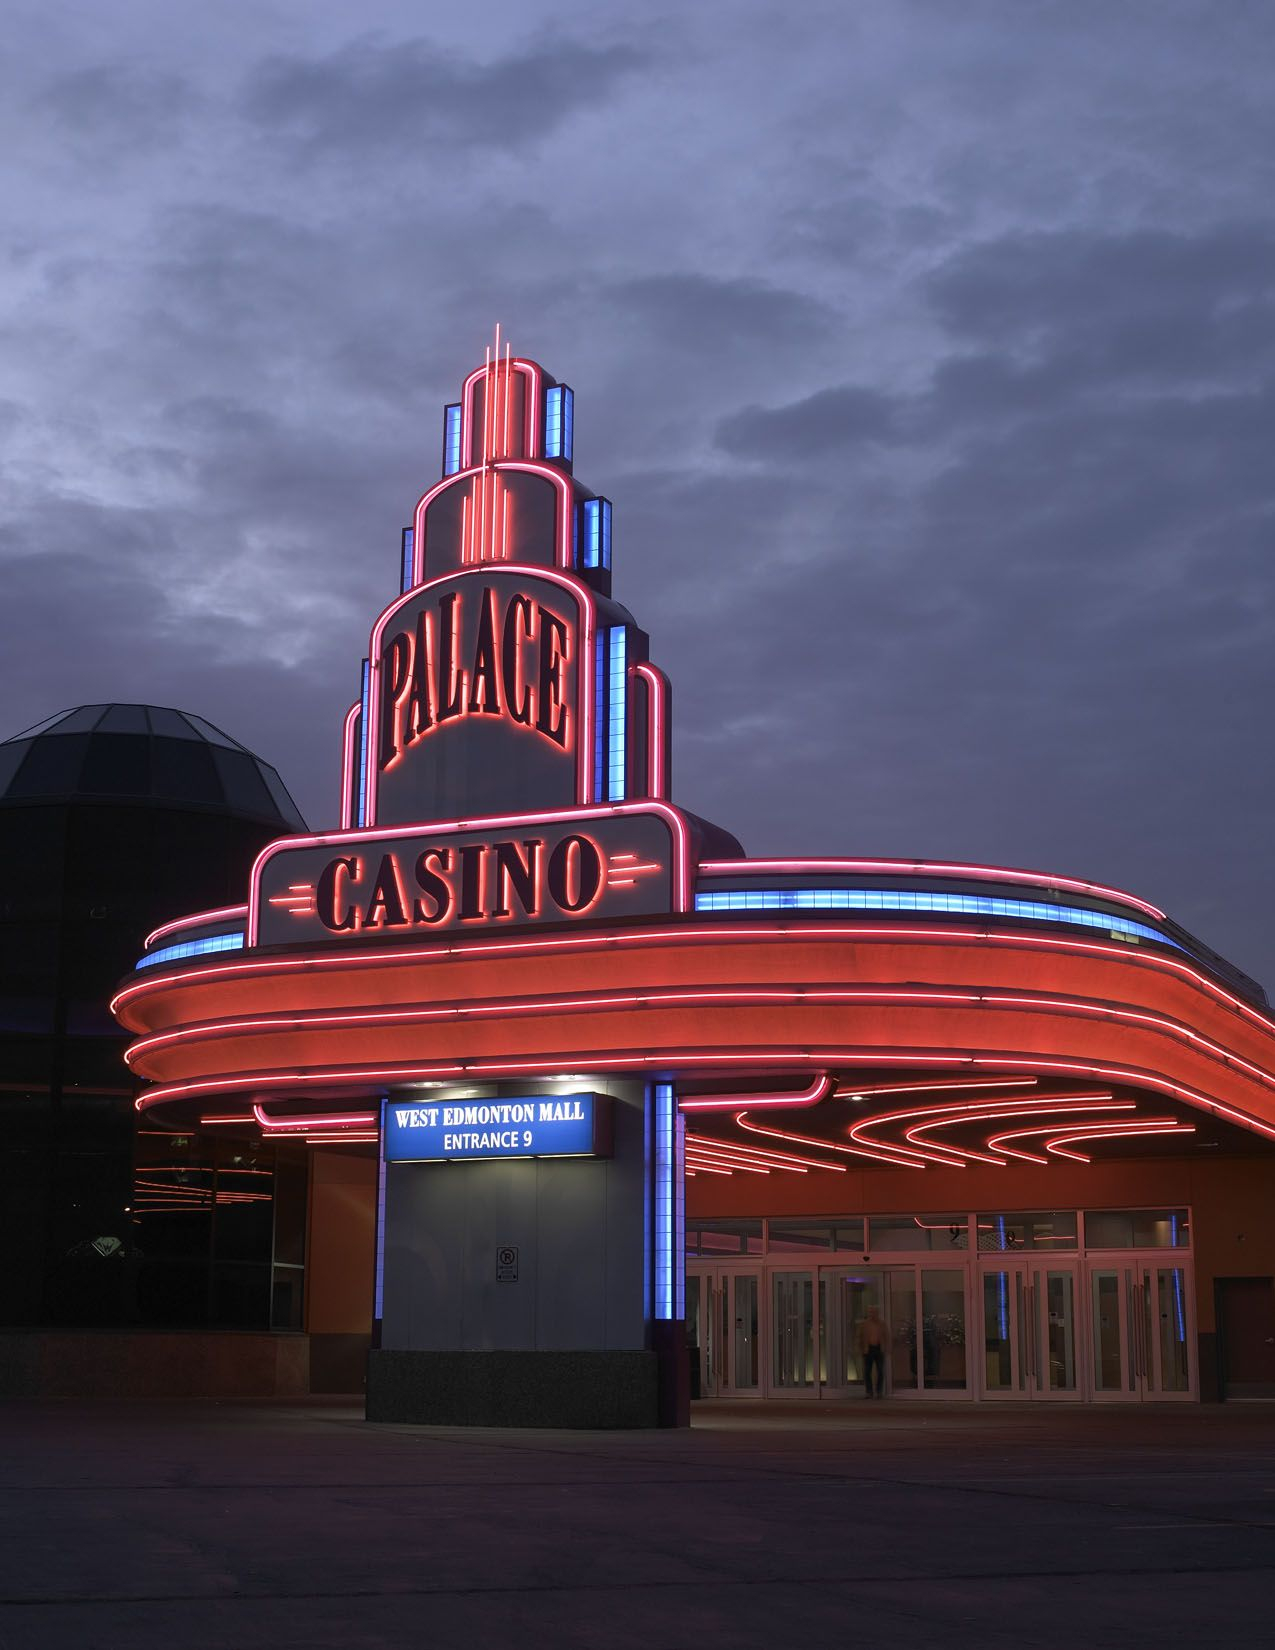 Edmonton: Palace Casino For West Edmonton Mall In Edmonton, Alberta